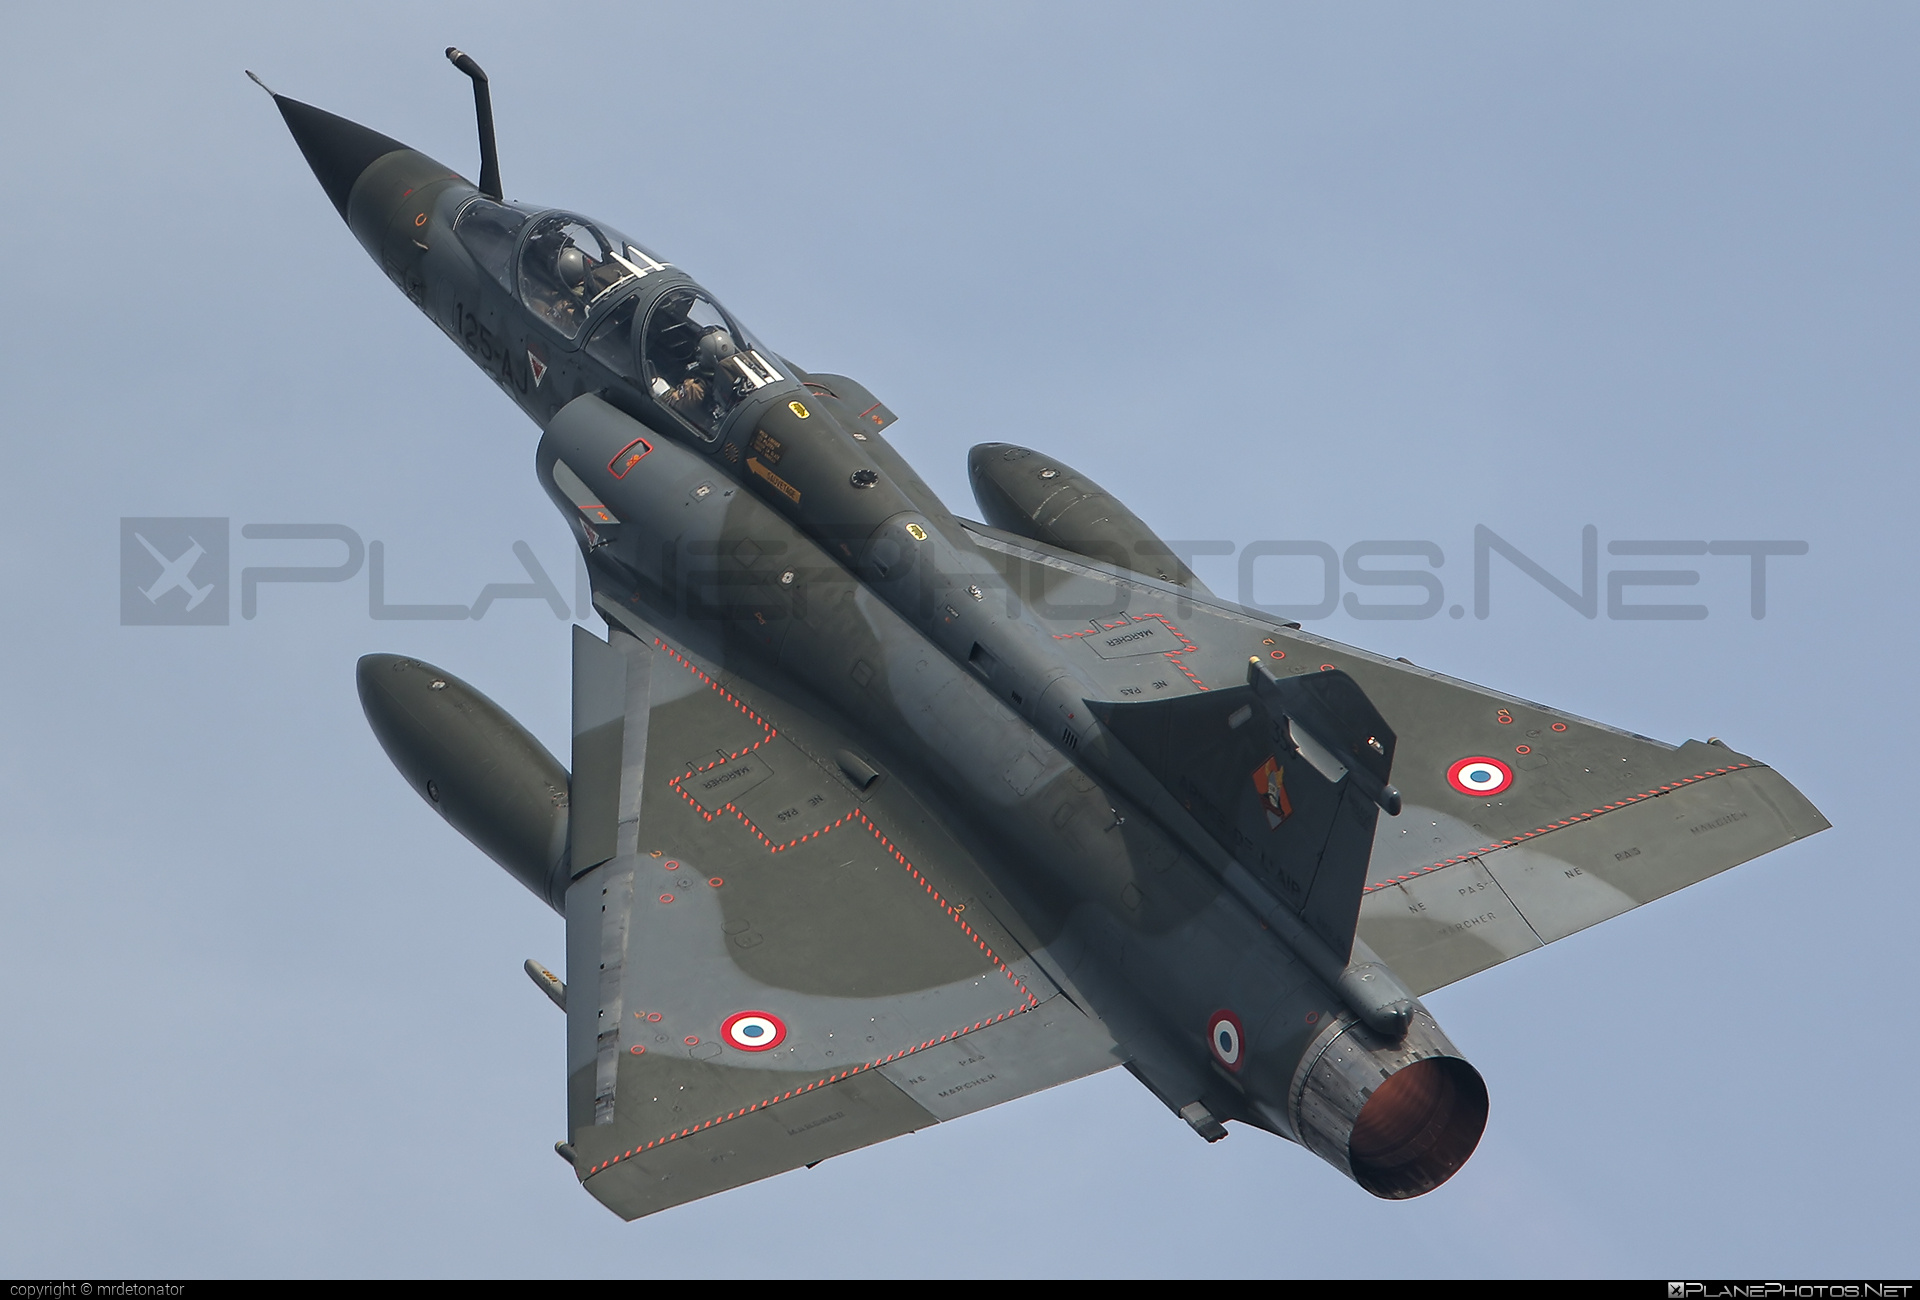 Dassault Mirage 2000N - 350 operated by Armée de l´Air (French Air Force) #DassaultMirage #DassaultMirage2000 #DassaultMirage2000n #armeedelair #dassault #frenchairforce #mirage #mirage2000 #mirage2000n #natodays #natodays2015